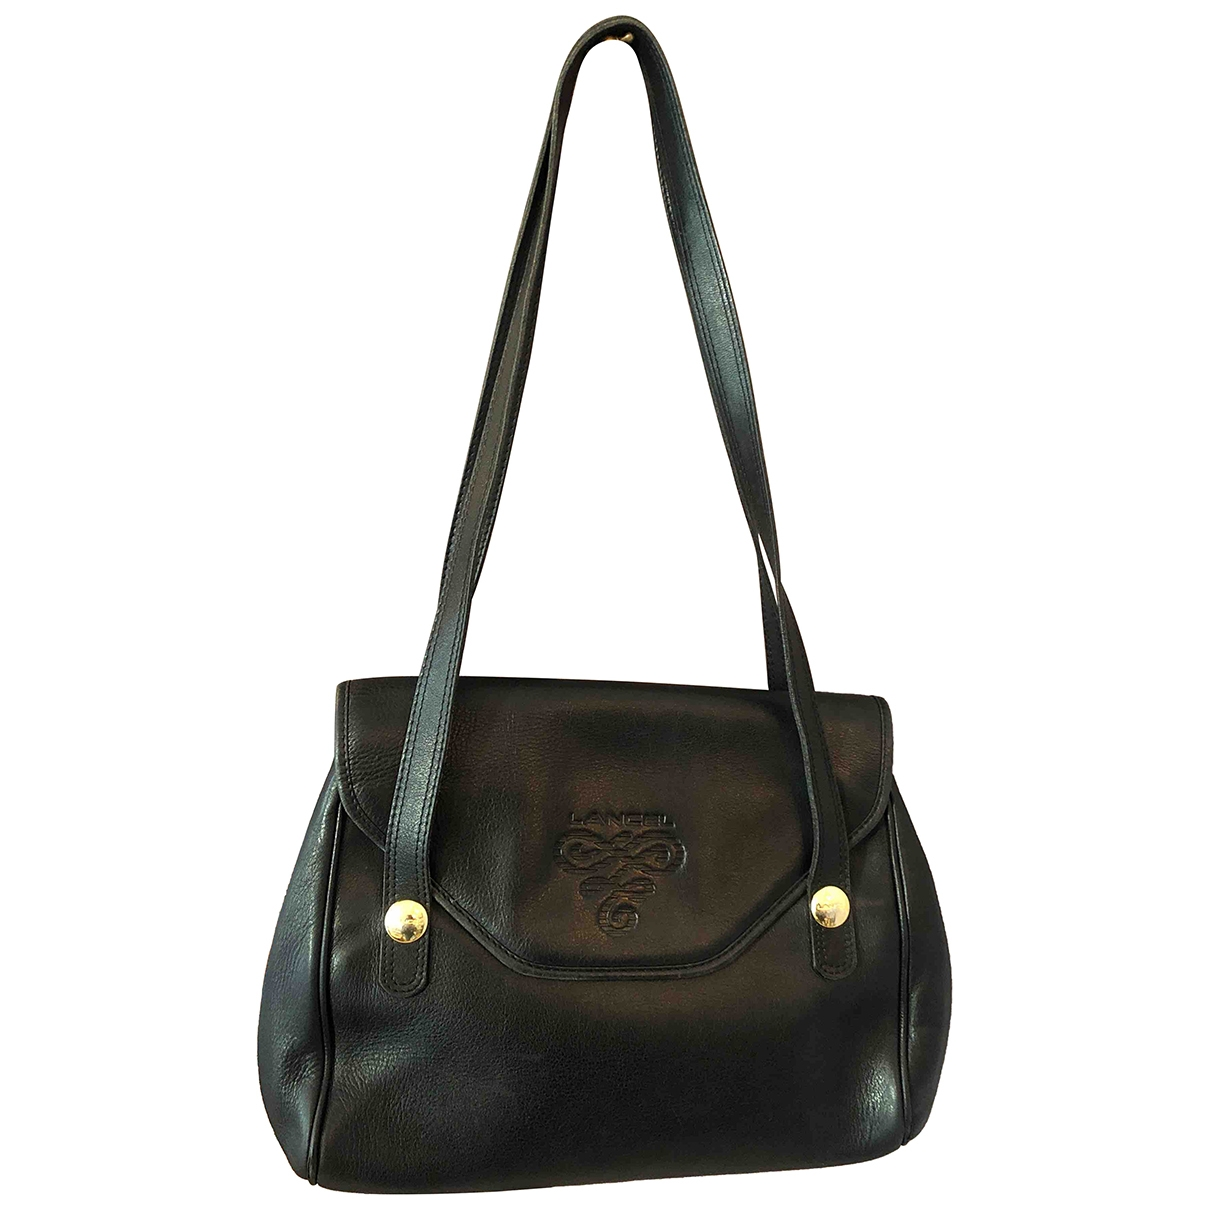 Lancel \N Black Leather handbag for Women \N